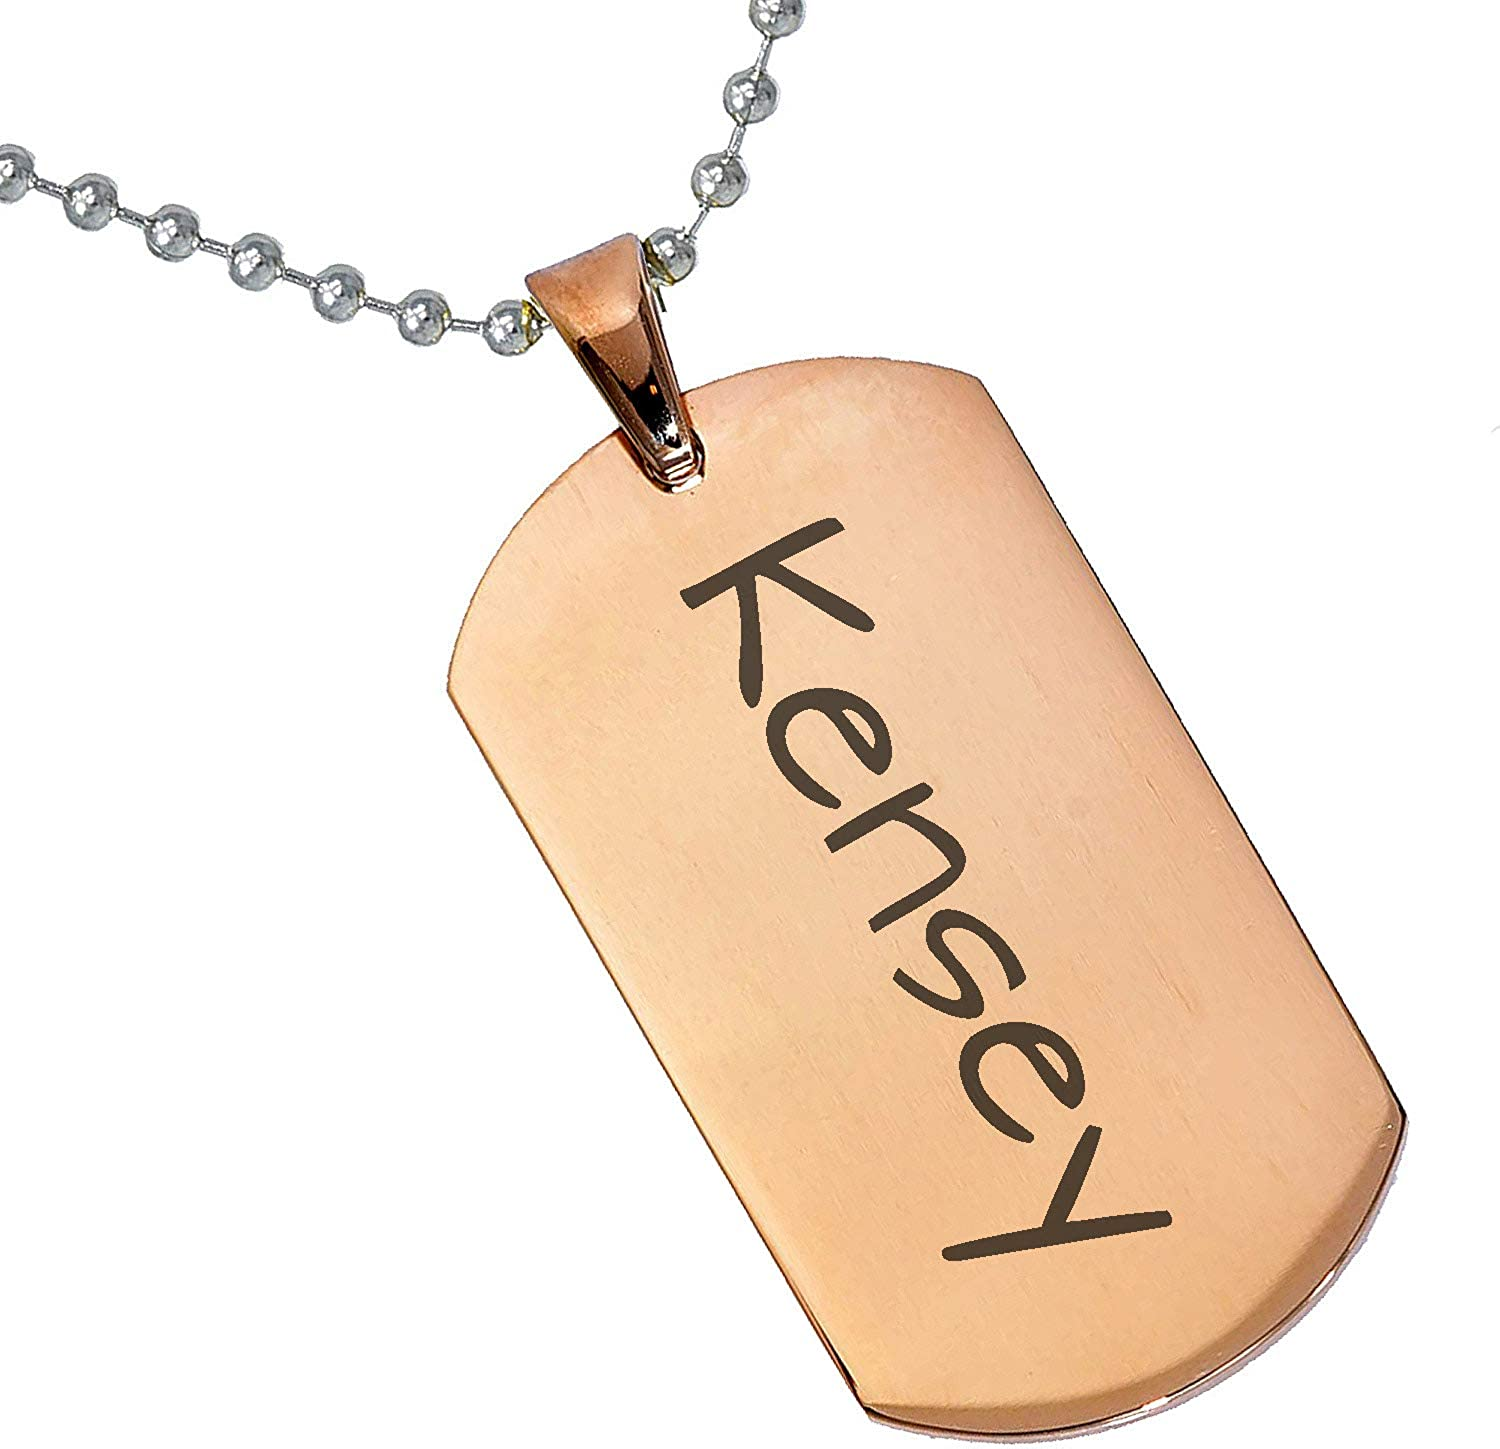 Stainless Steel Silver Gold Black Rose Gold Color Baby Name Kensey Engraved Personalized Gifts For Son Daughter Boyfriend Girlfriend Initial Customizable Pendant Necklace Dog Tags 24 Ball Chain